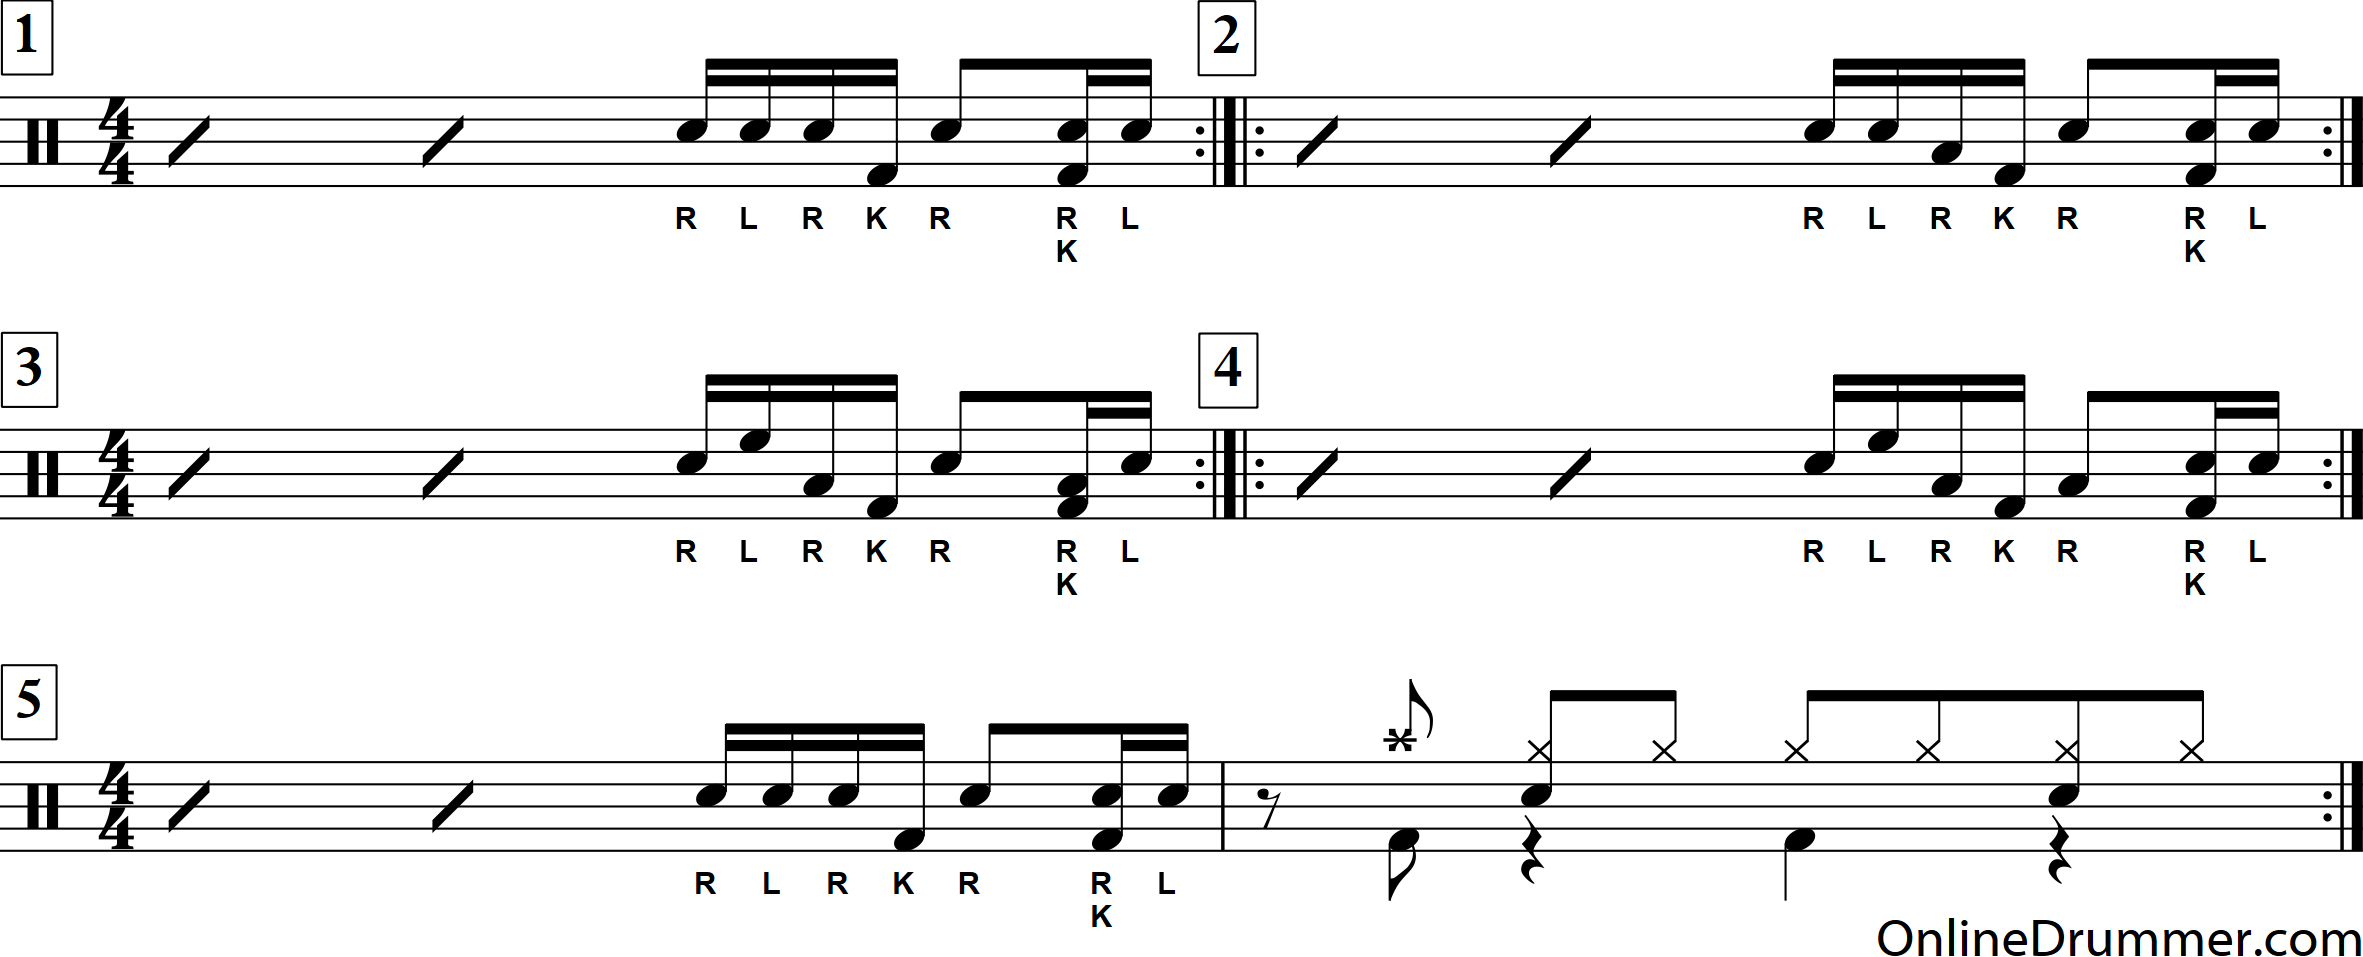 Drum-Fill-Number-2